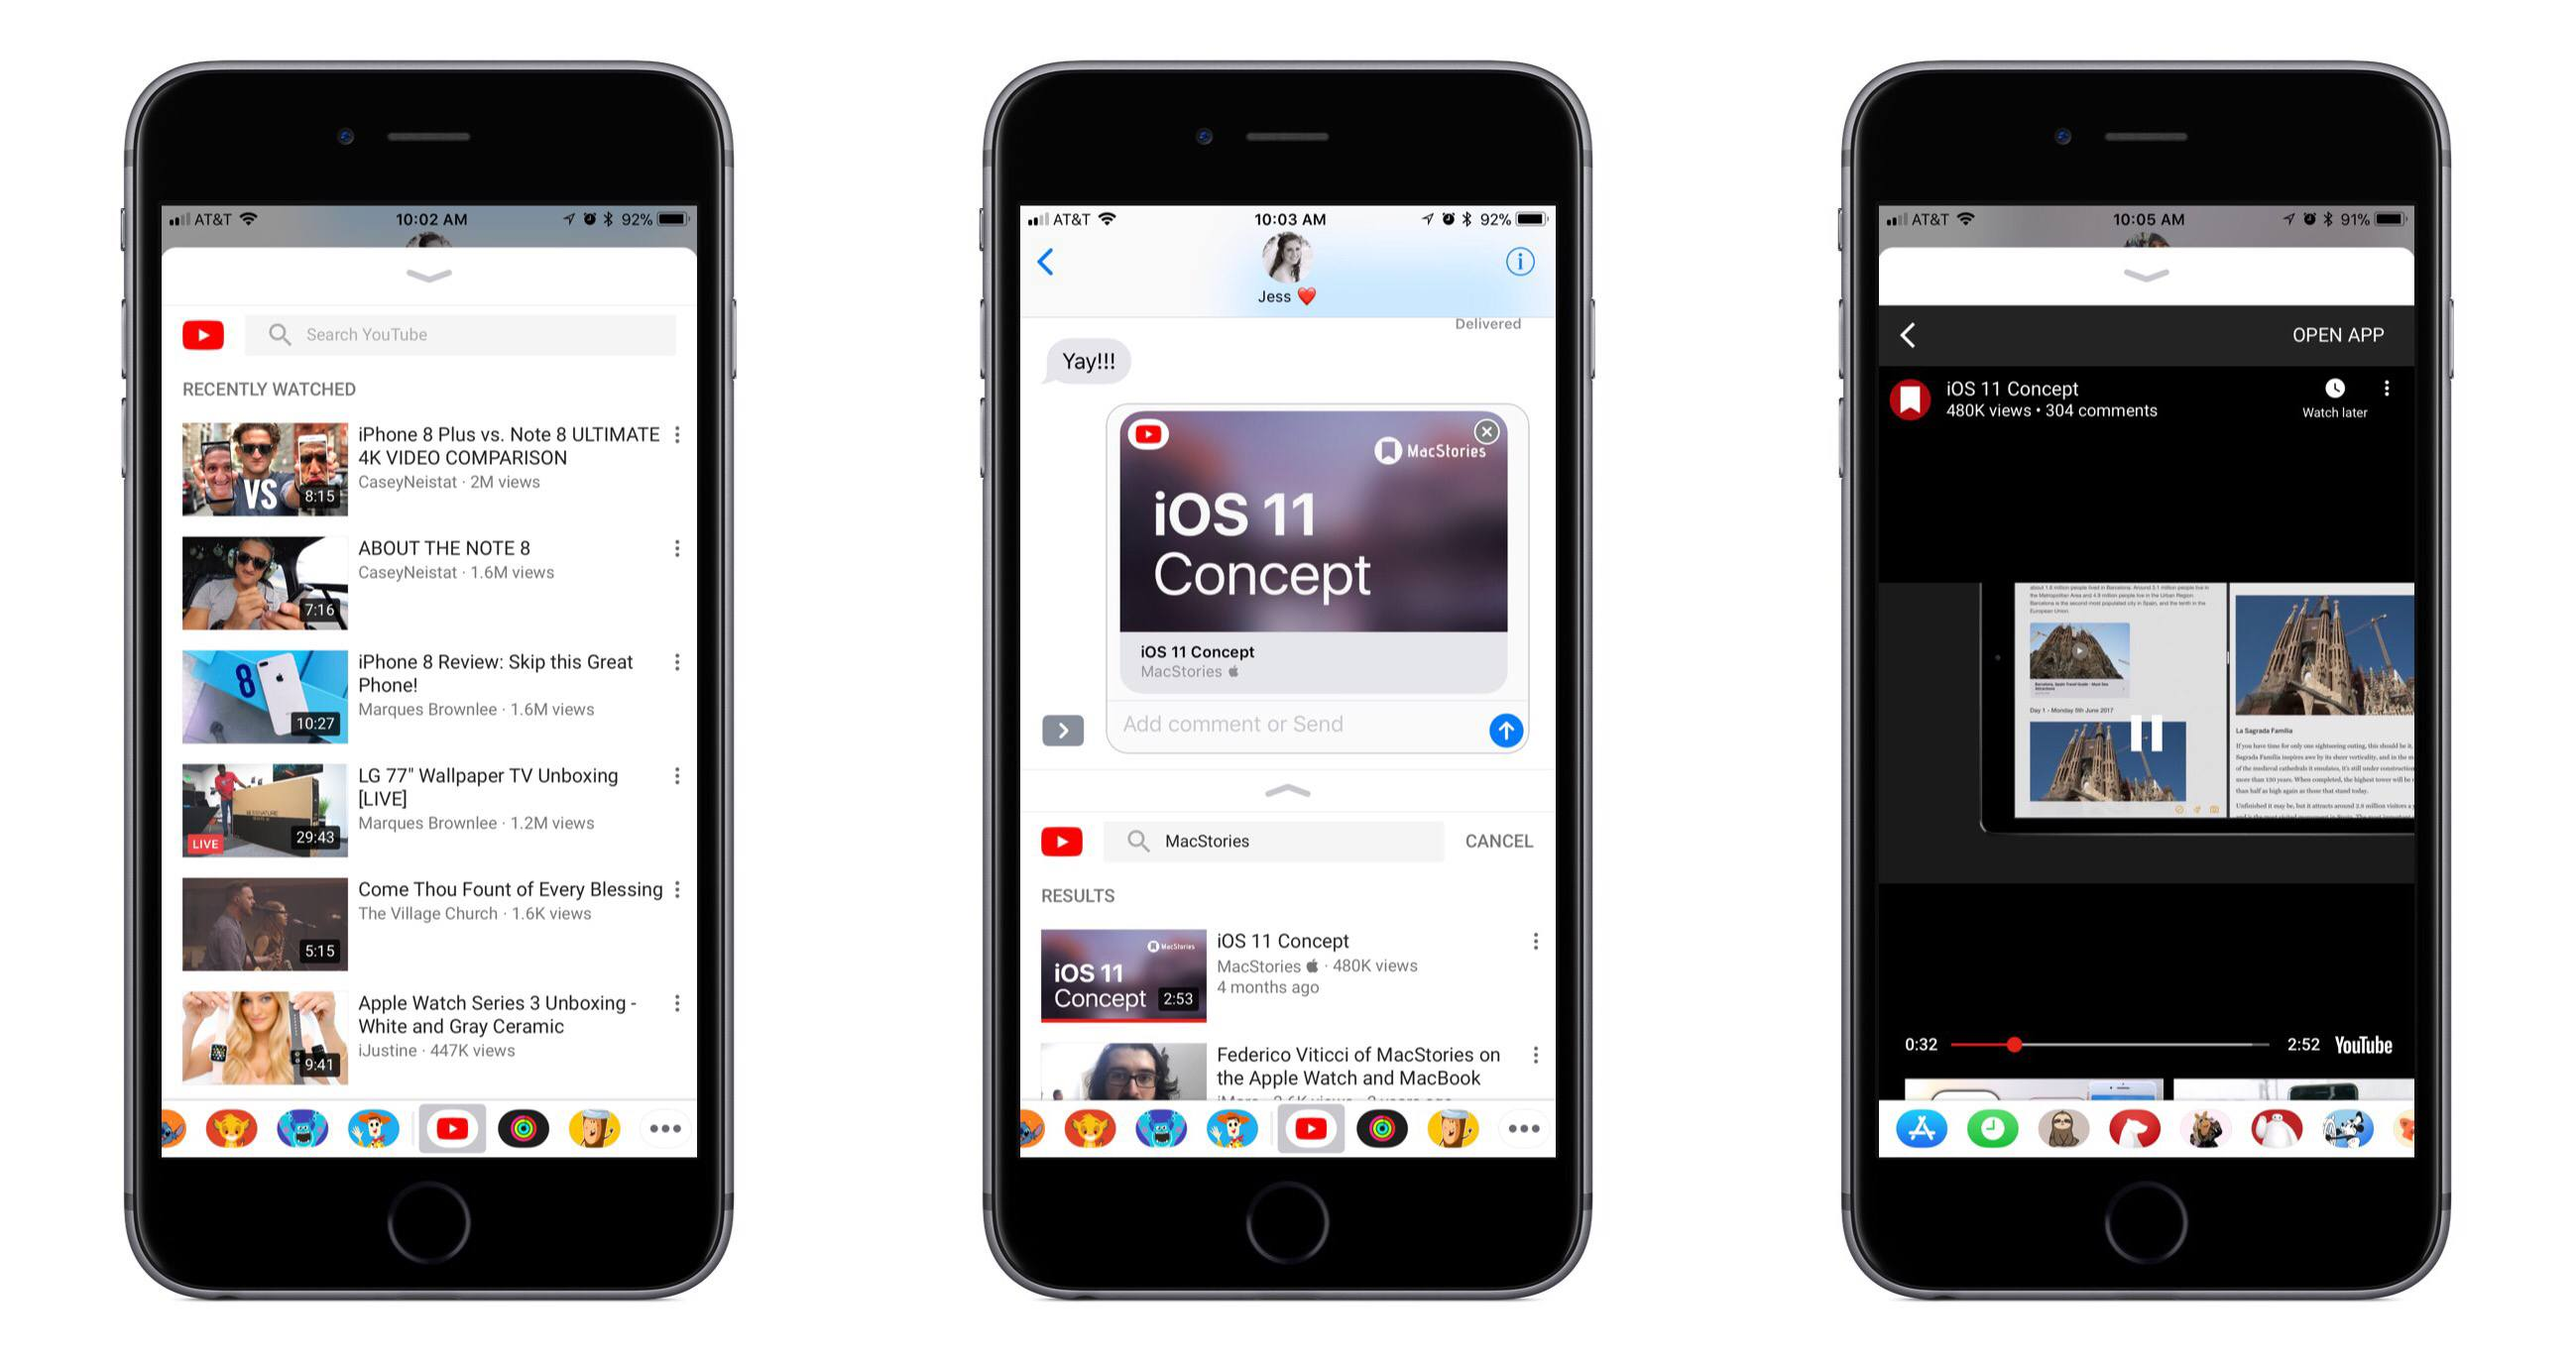 YouTube on iOS Adds Support for Sharing Videos to iMessage